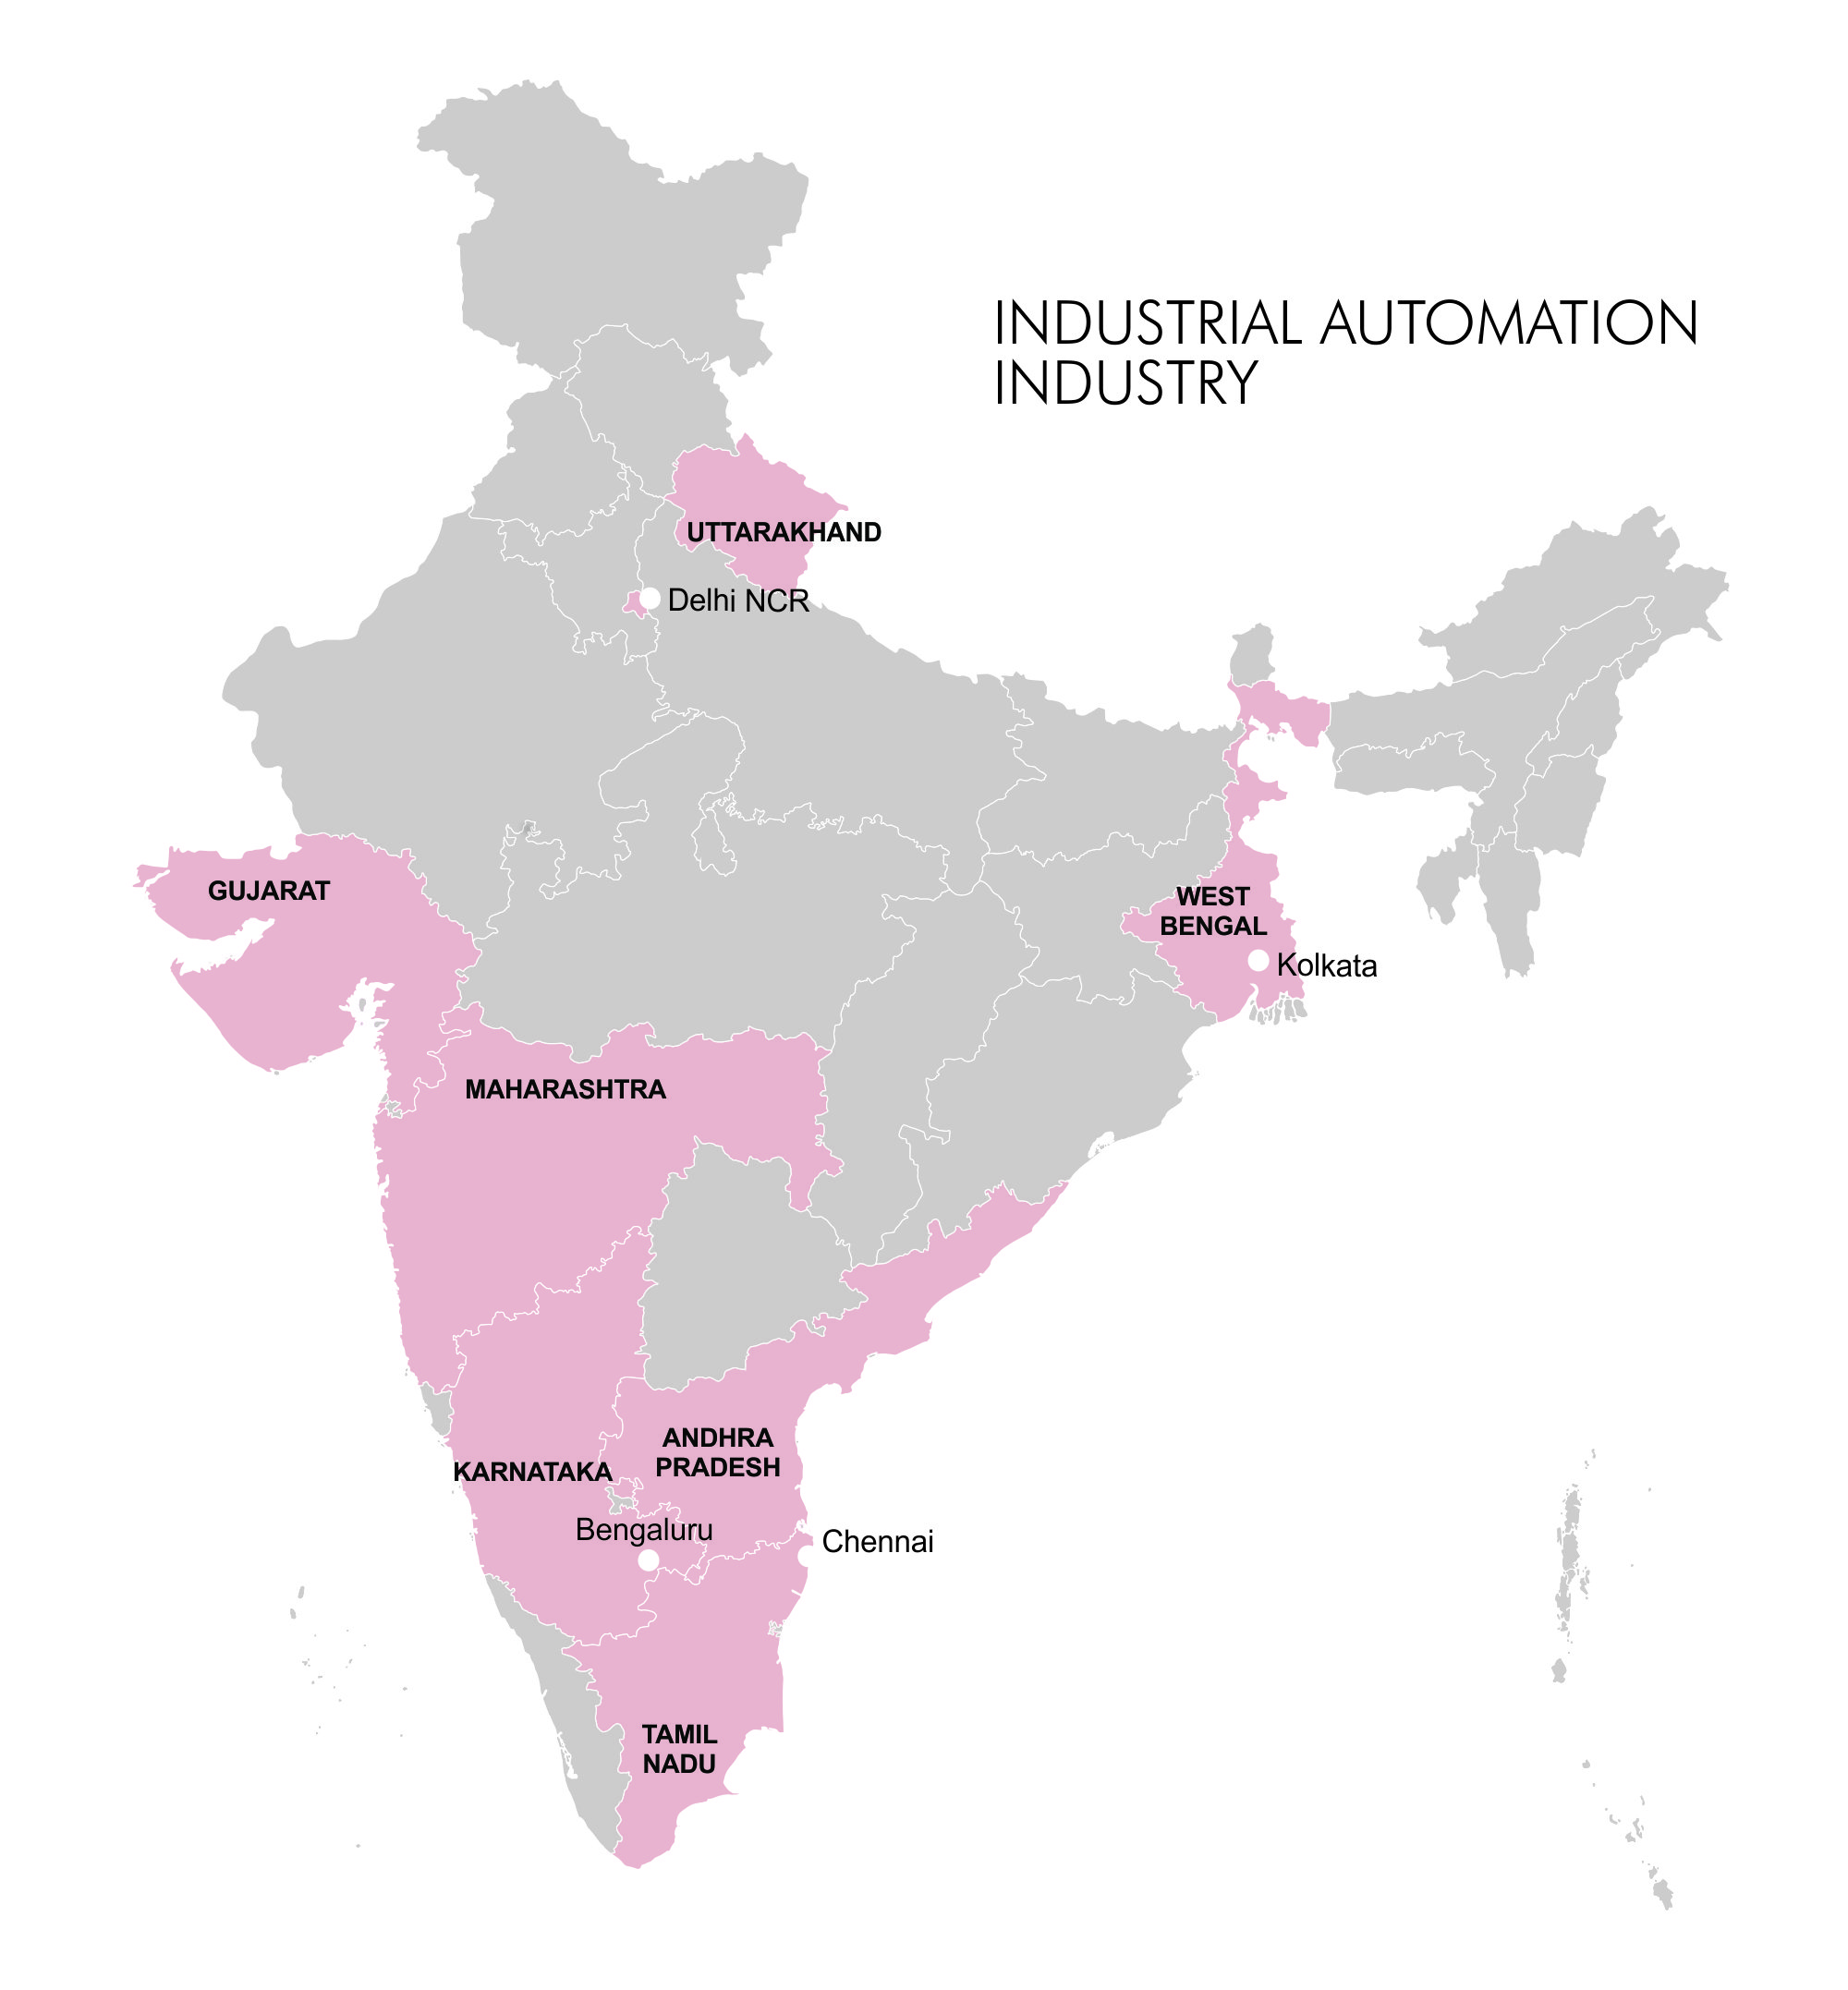 Map-Clusters - Industrial Automation Industry